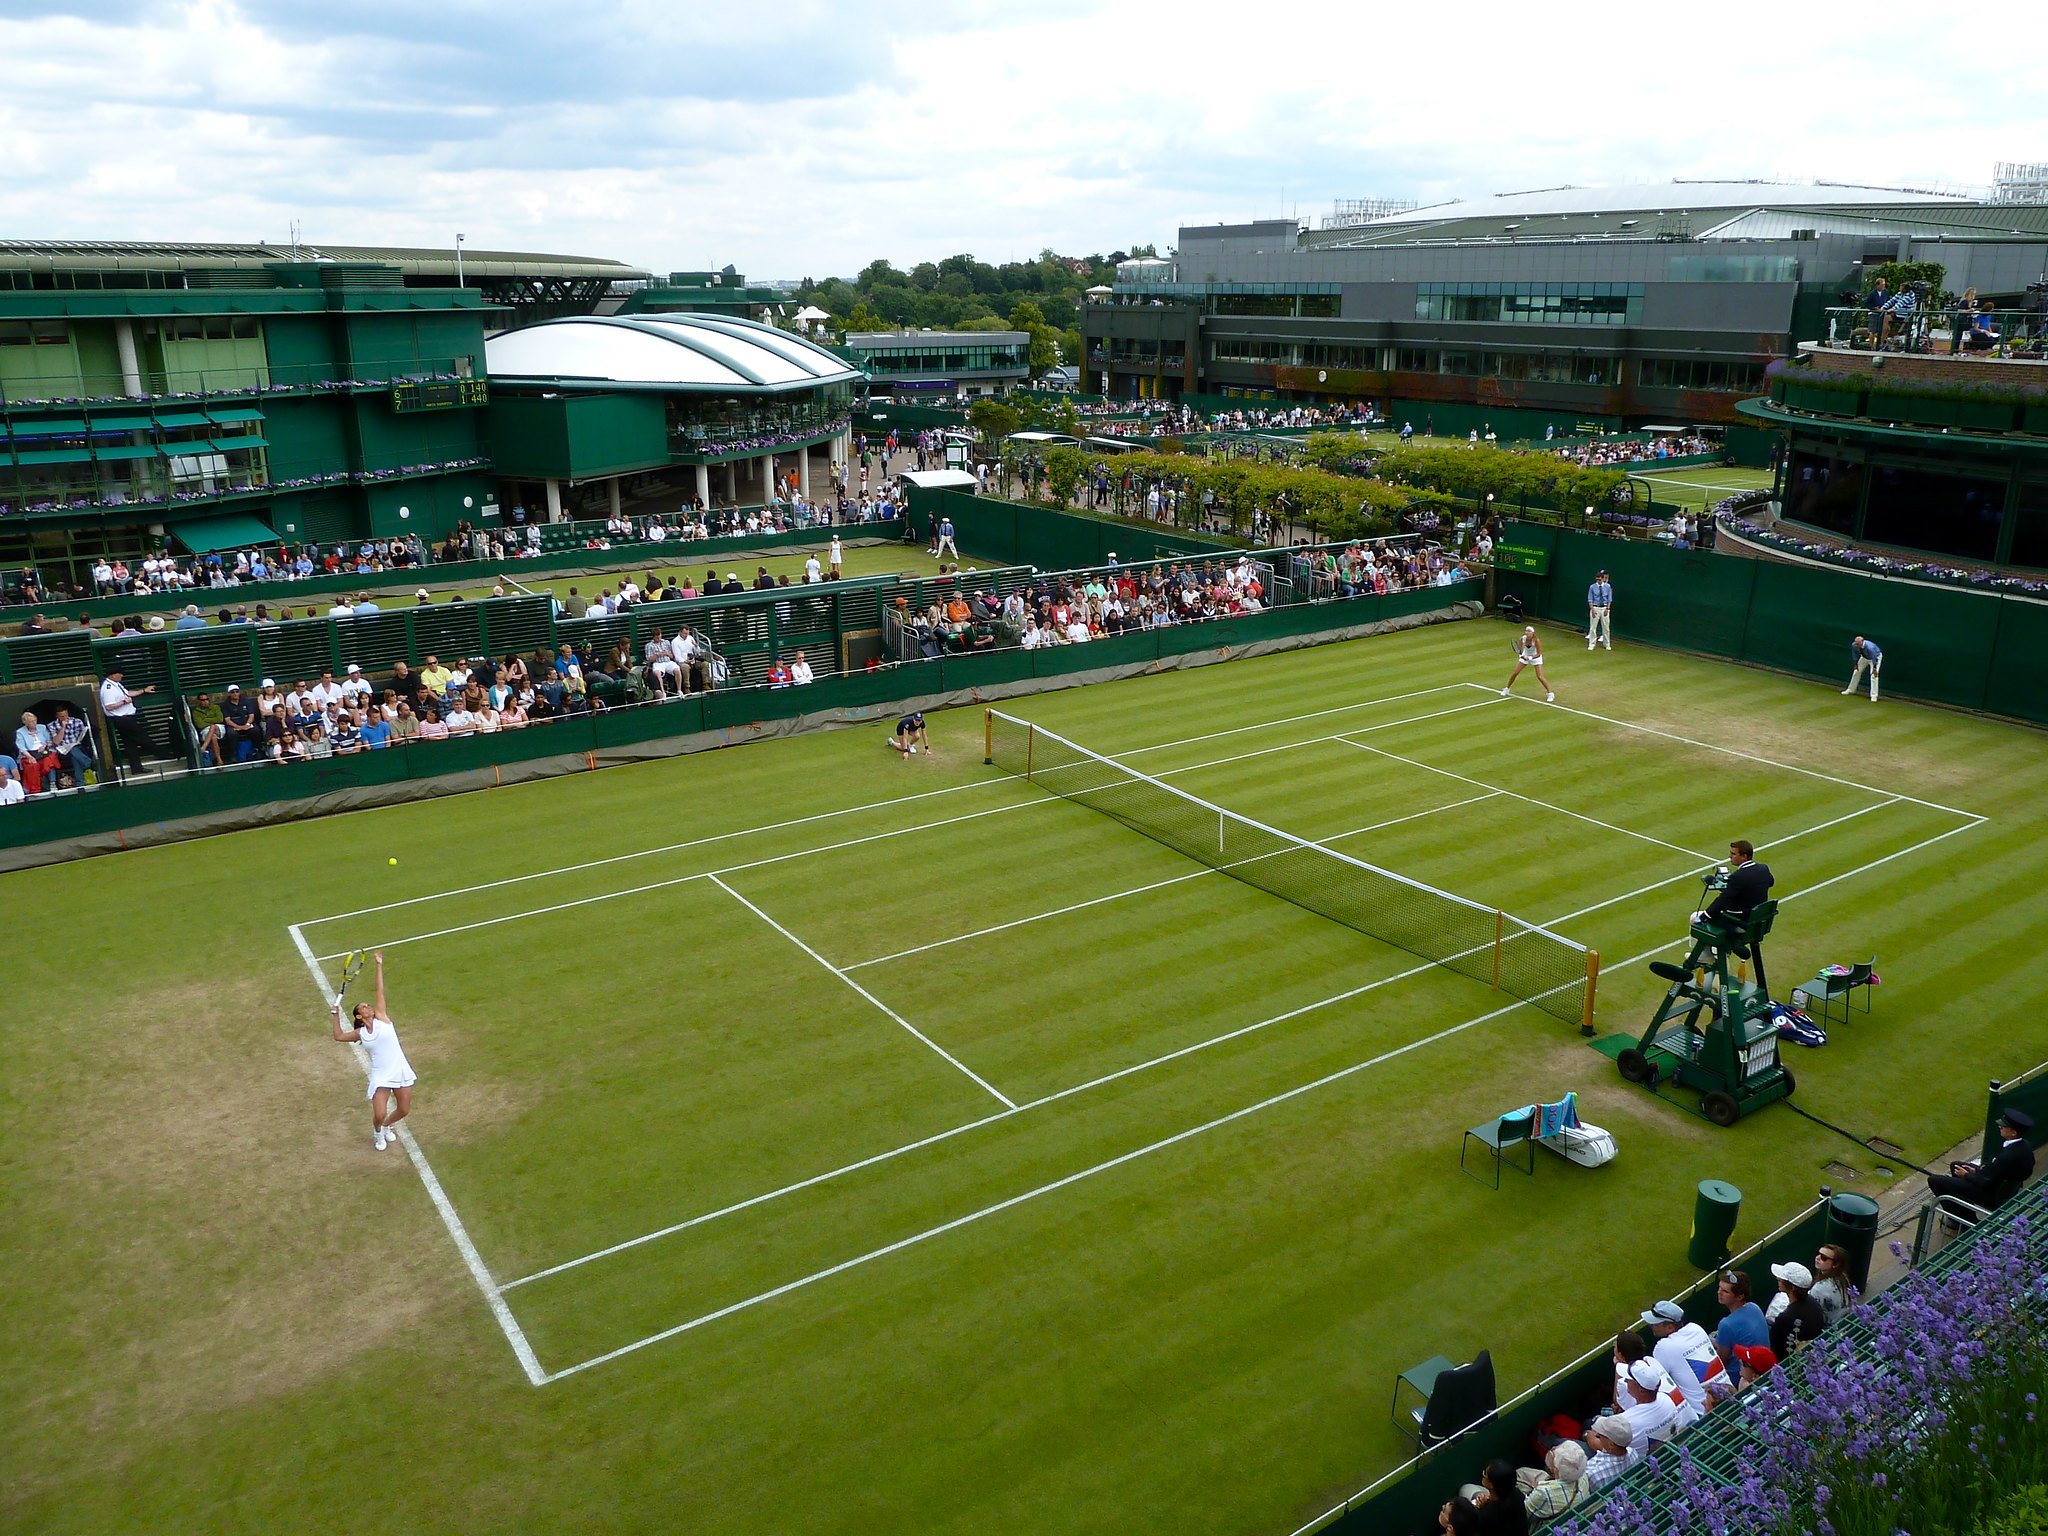 Wimbledon's Pandemic Insurance Policy Will Reportedly Pay Out $141 Million